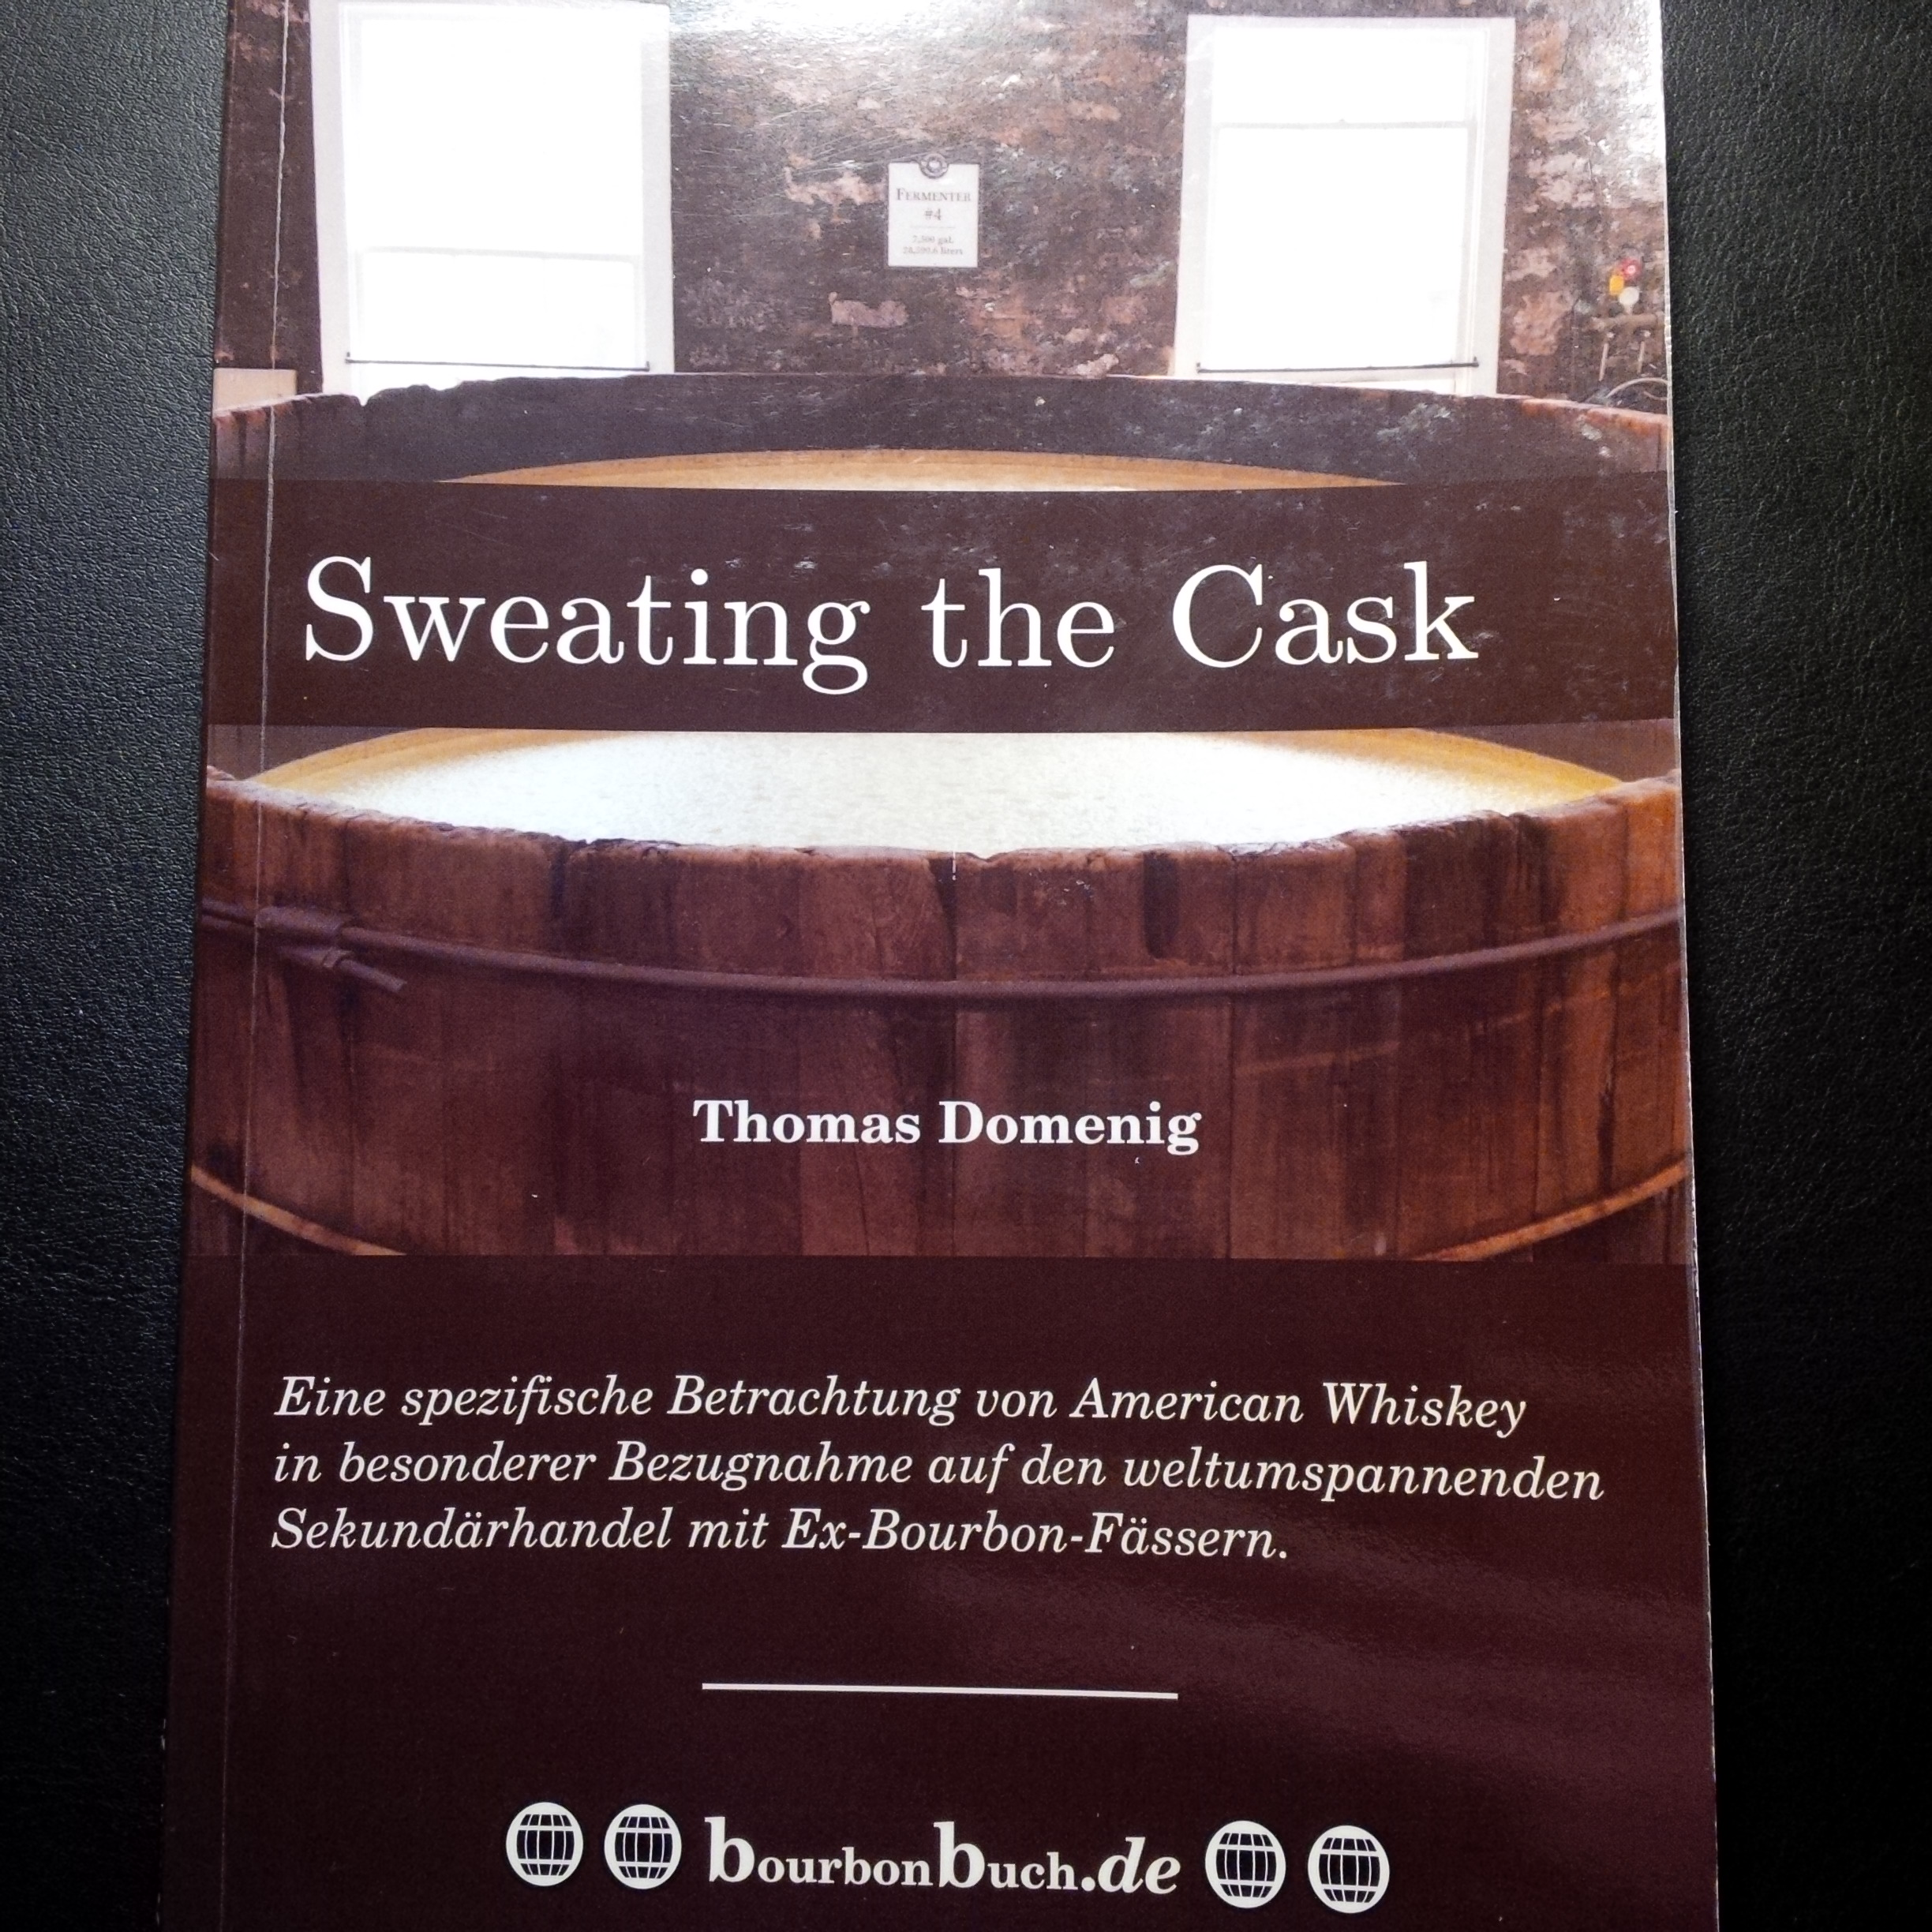 Sweating the Cask